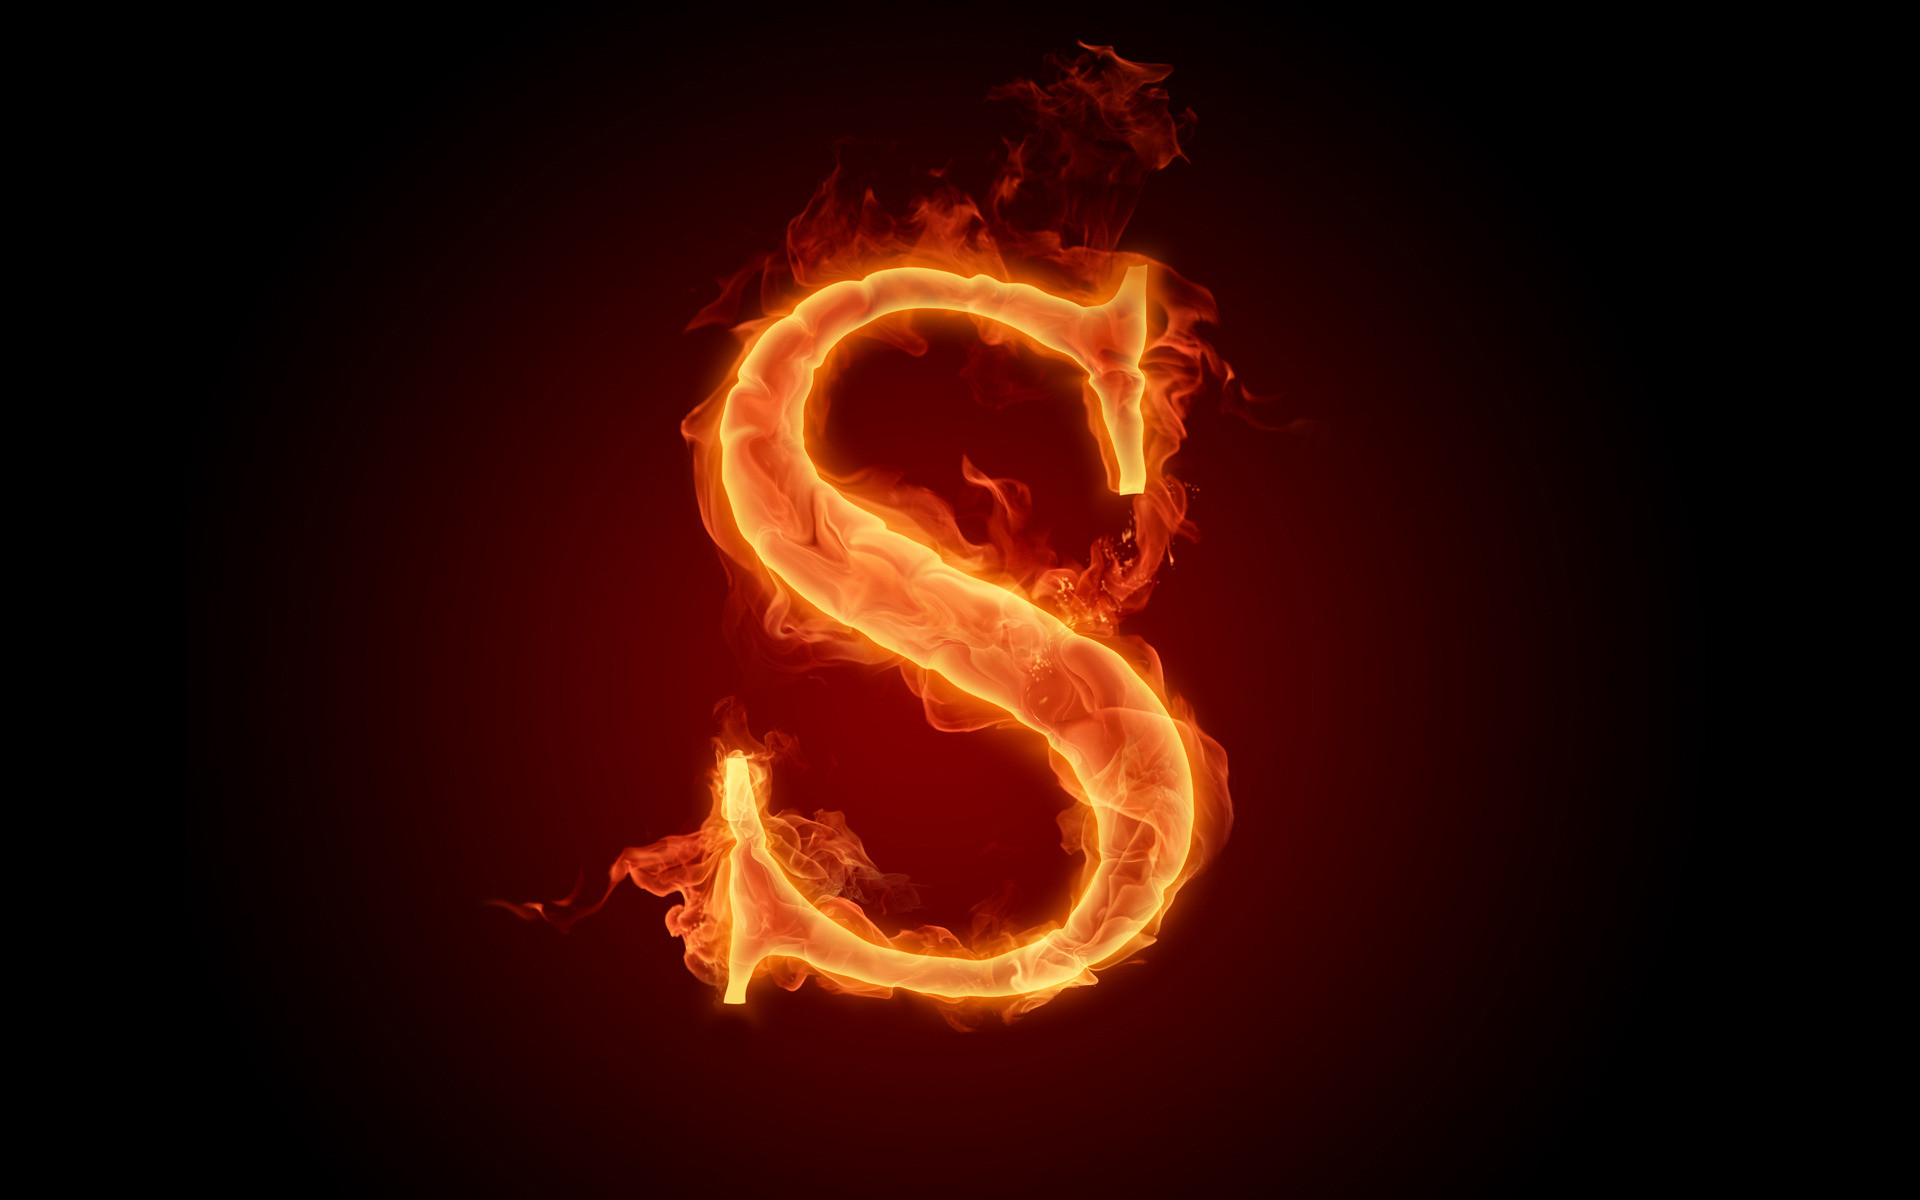 HD Wallpapers The fiery English alphabet picture R